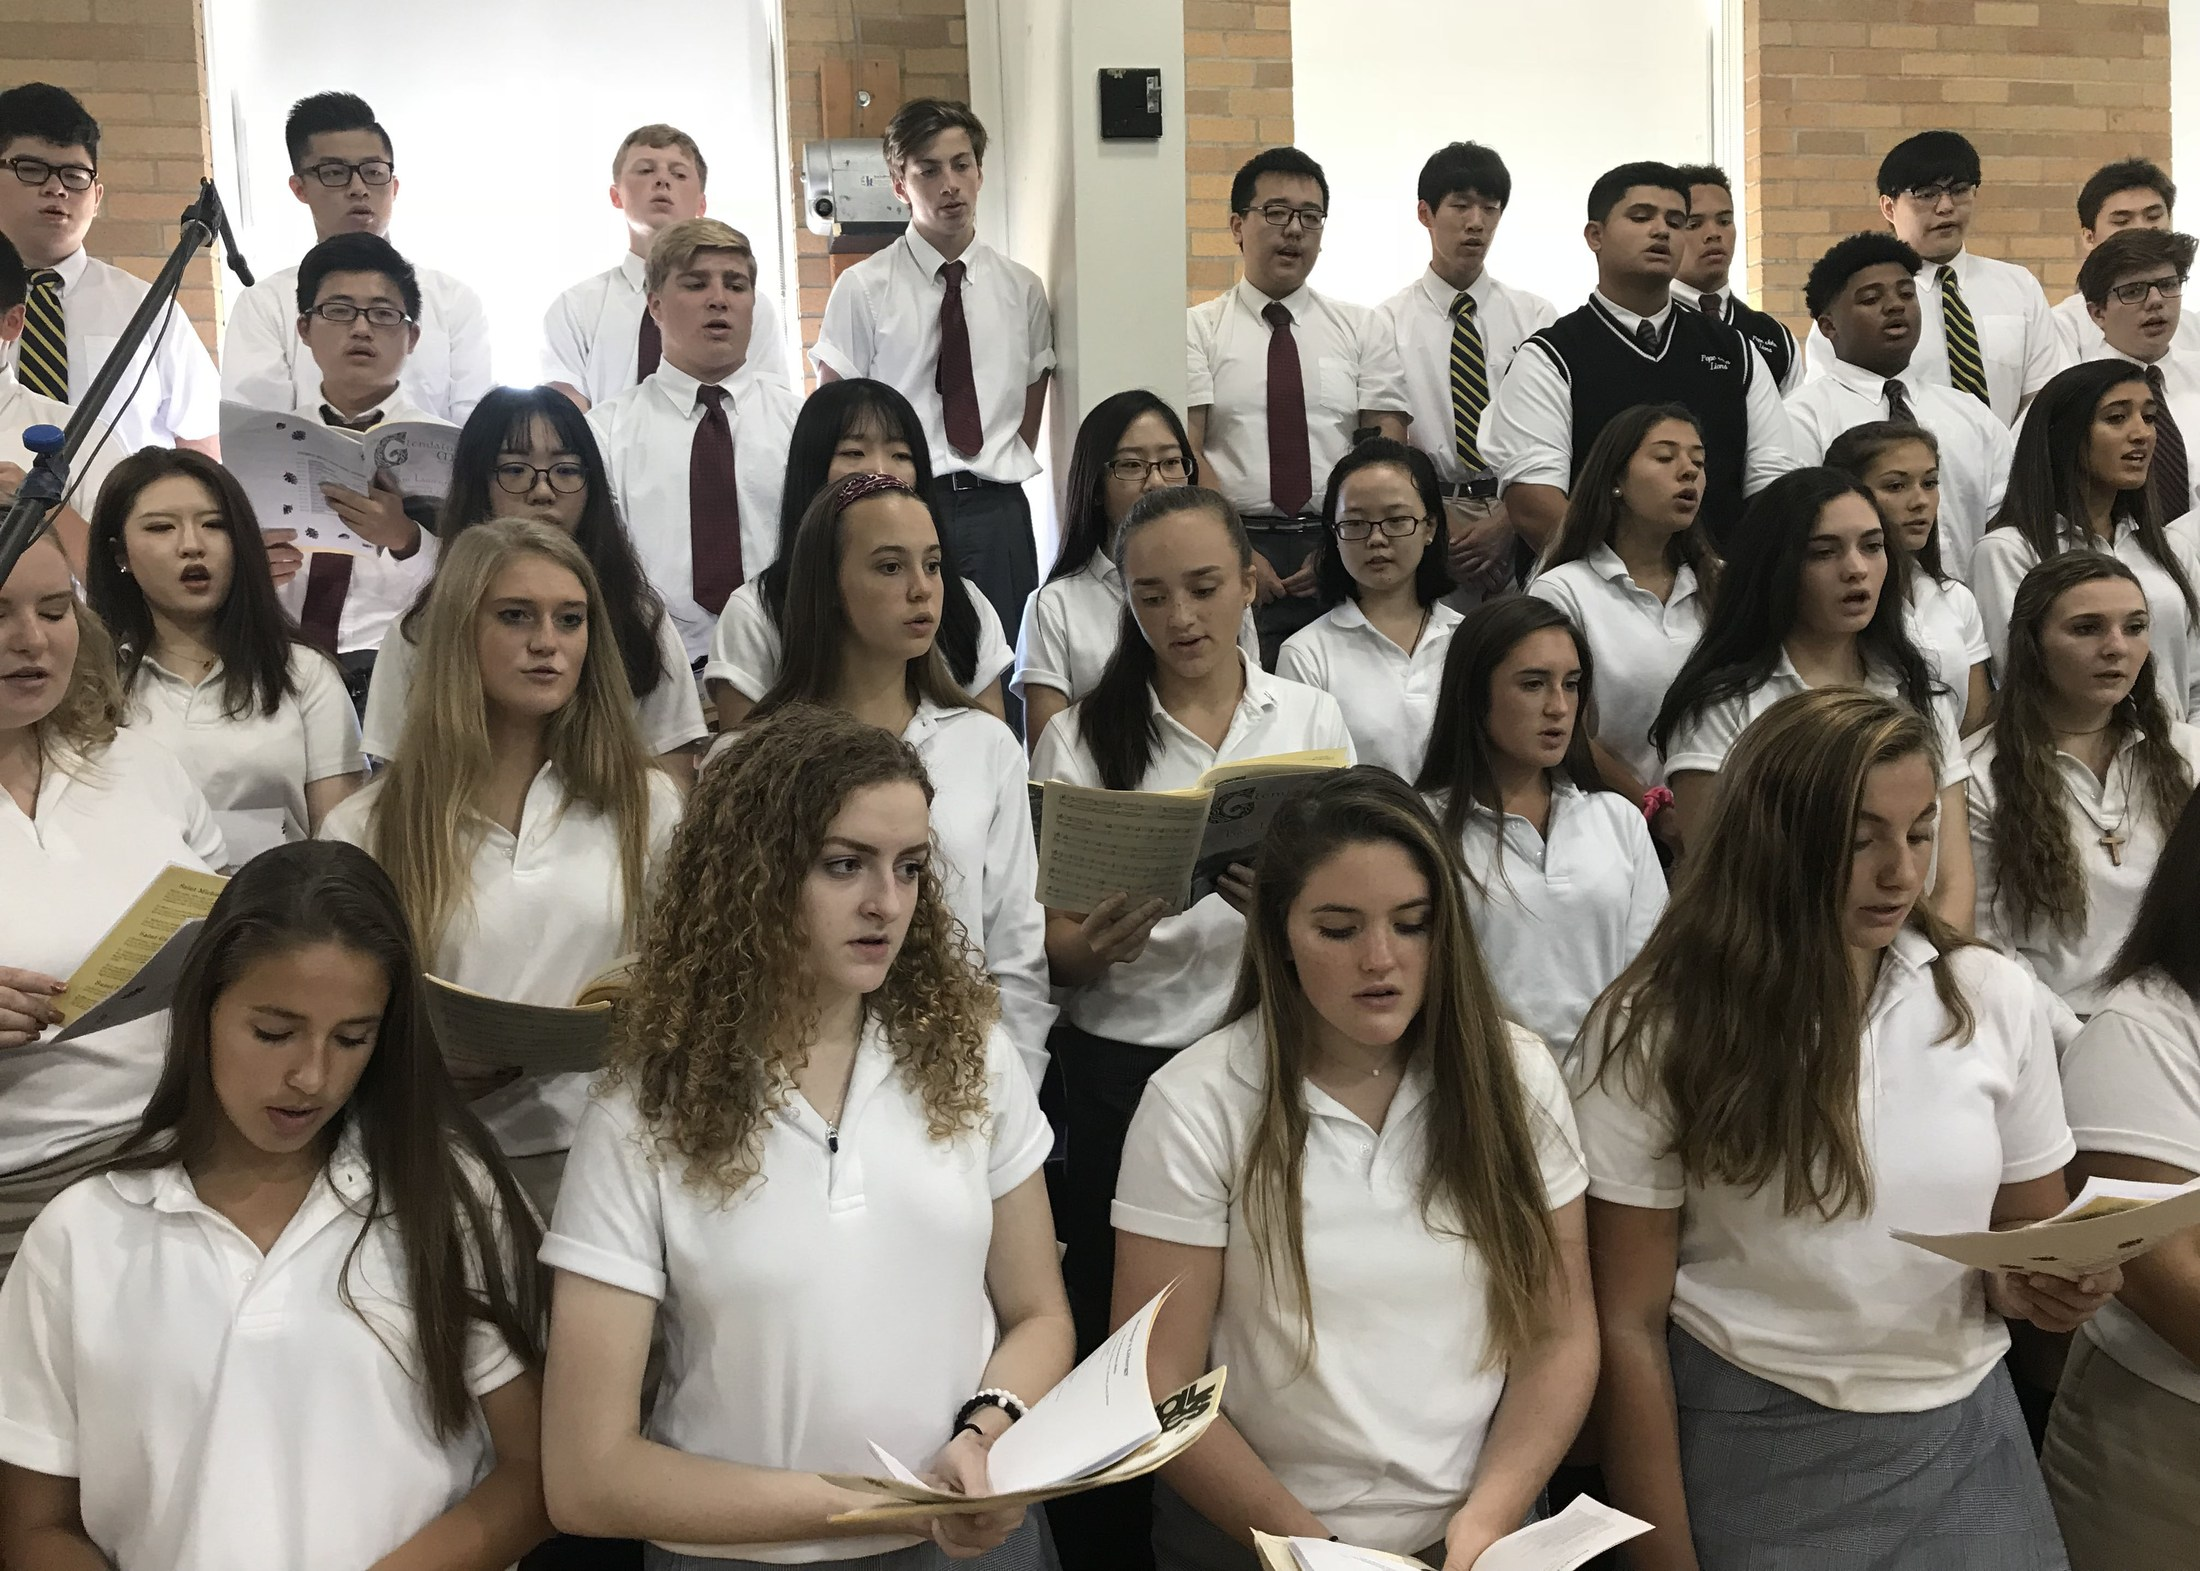 Mixed choir singing in mass